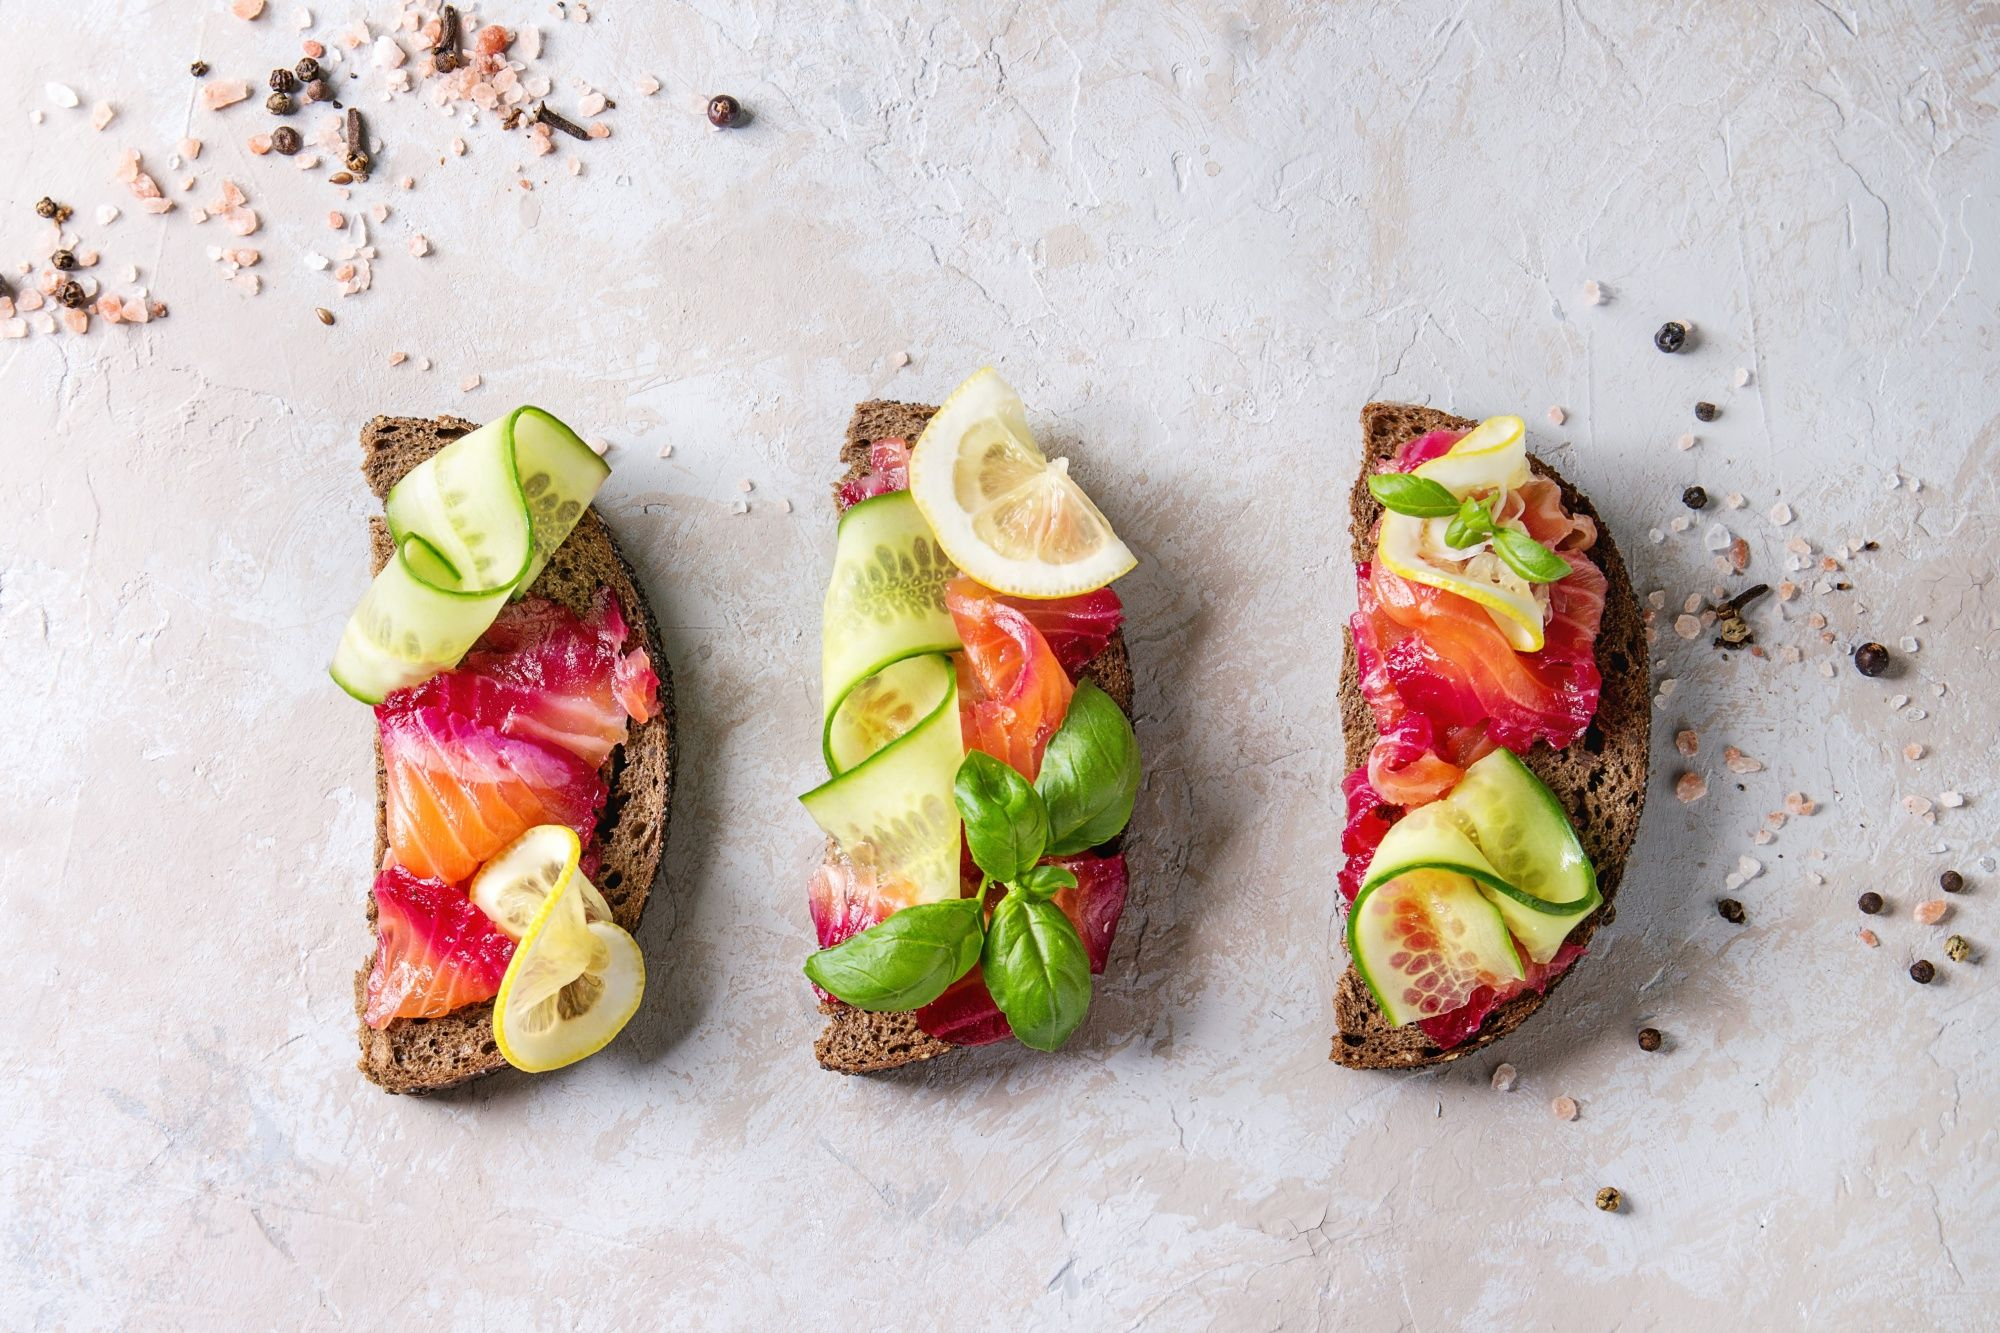 Sliced beetroot marinated salmon sandwiches with rye bread, cucumber, basil and lemon over grey texture background Top view, space. (Photo by: Natasha Breen/REDA&CO/Universal Images Group via Getty Images)